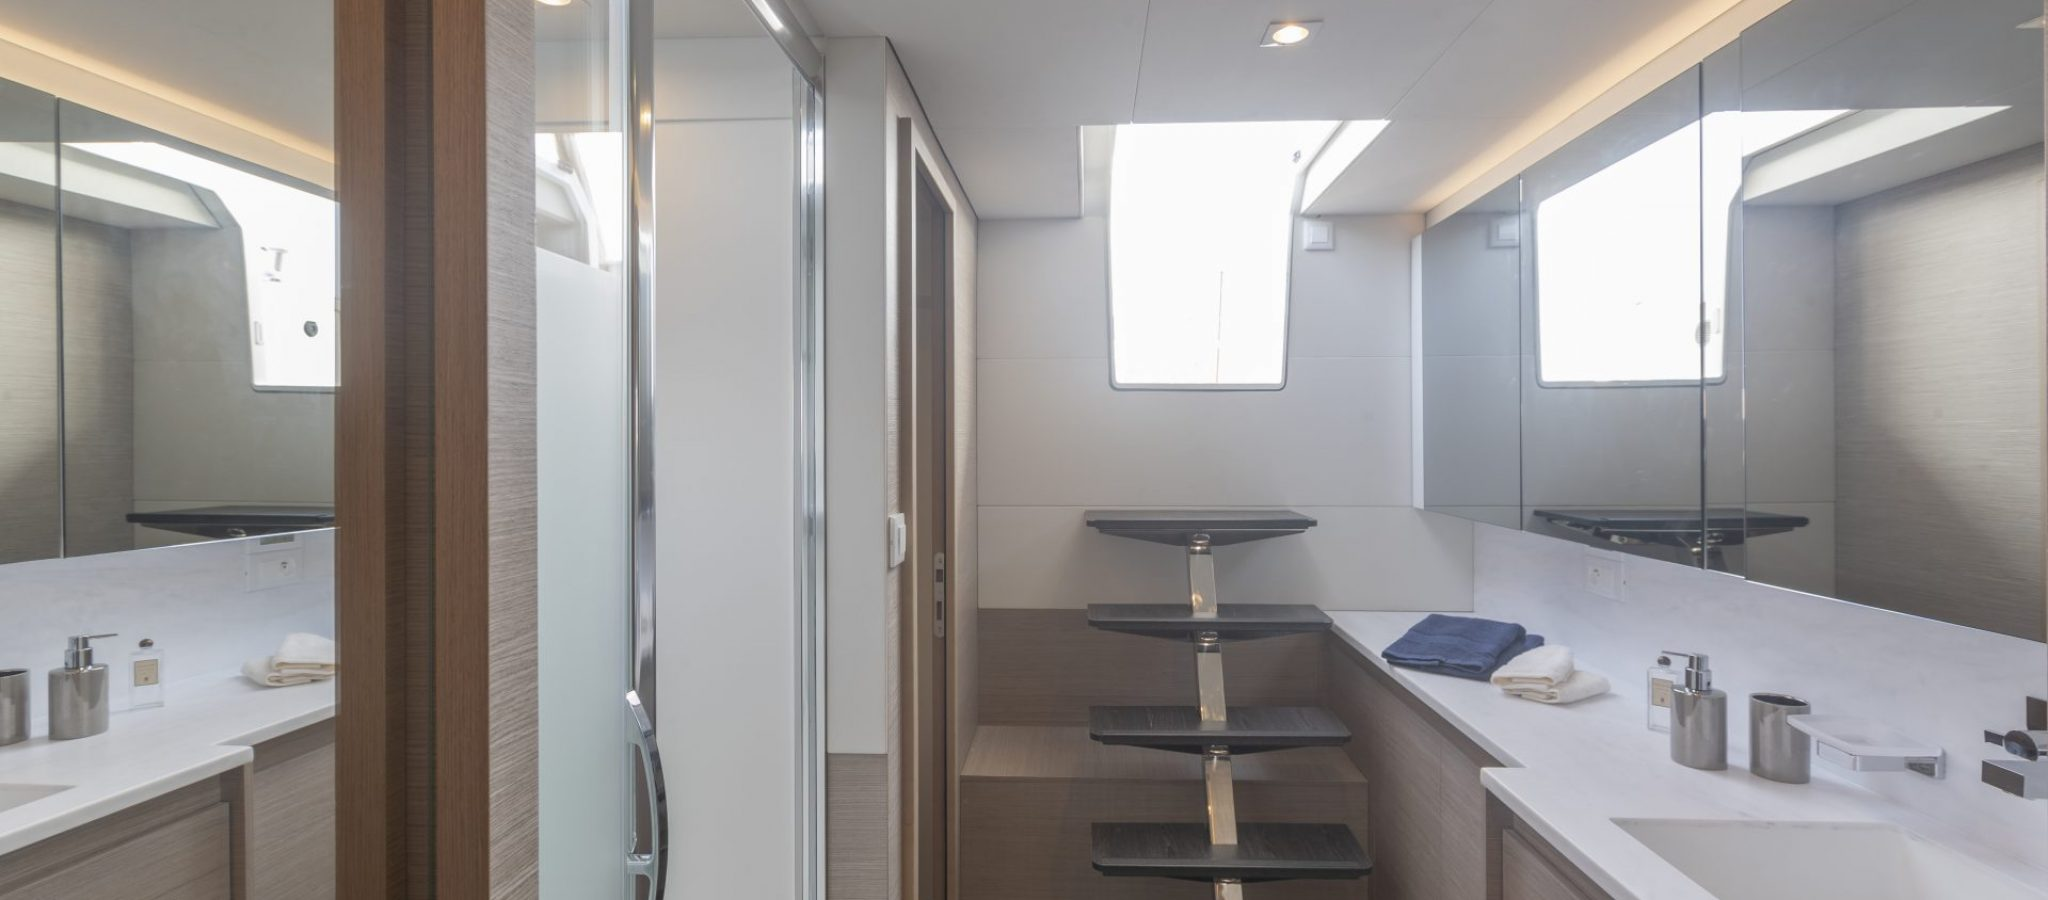 Fountaine-Pajot-Samana-59-Owner-Suite